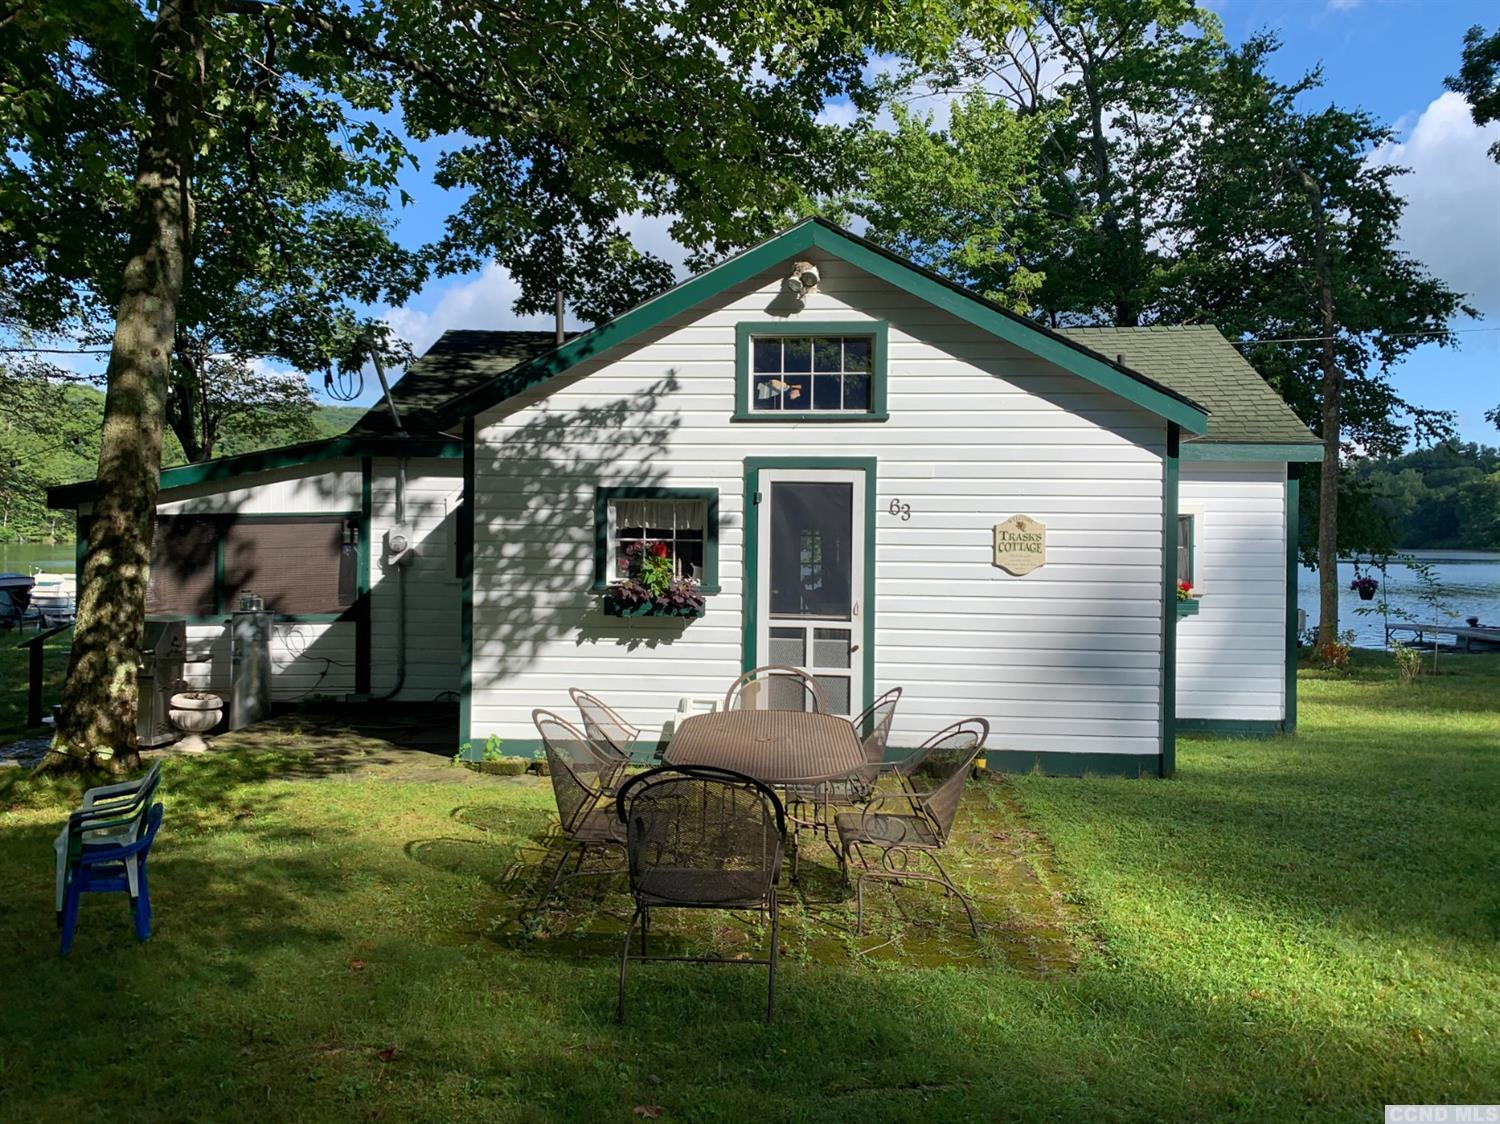 Lake front cottage on most sought after Queechy Lake, one of the cleanest lakes in New York.<br>Wrap around screened in porch. Open layout, granite kitchen counters, with views through the house of the lake. Paddle fans, rustic wood interior, hardwood floors. new central air/heating system with back up wood stove for chilly summer nights.<br>Open great room with two lofts with queens size beds overlook the lake and your two private boat docks. View is to the West which offers morning and afternoon sunshine and gorgeous sunsets.  Plenty of parking unlike most lakefront homes. Private association beach.<br>Move in and enjoy summer fun.<br>